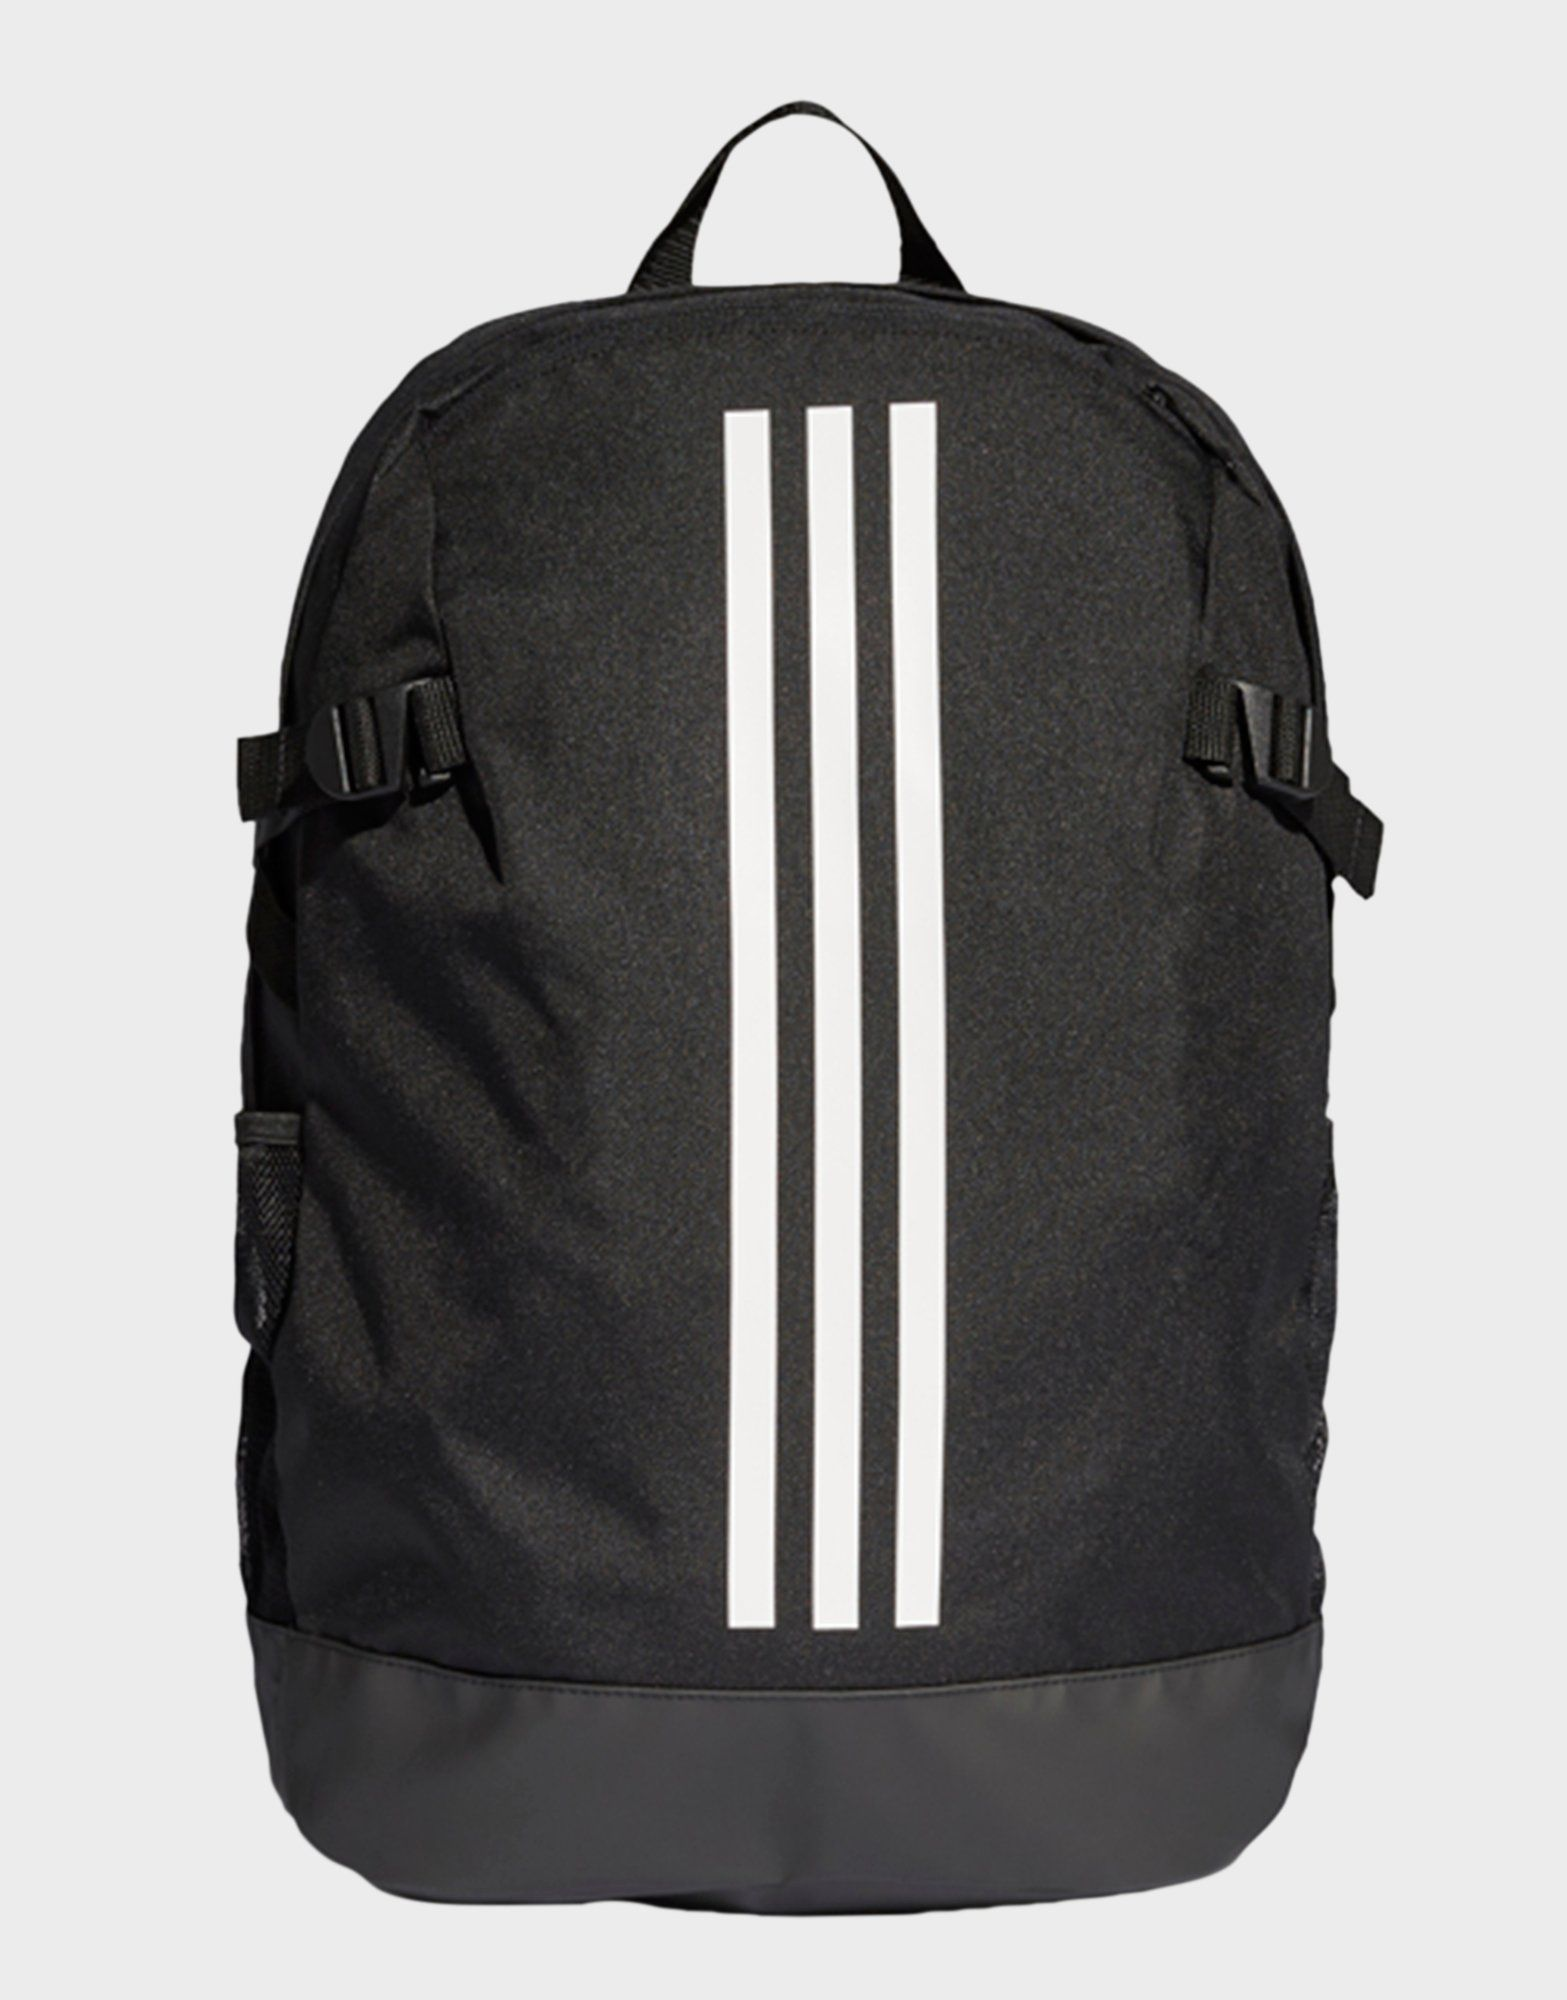 64123f8fbb ADIDAS Power 4 Loadspring Backpack